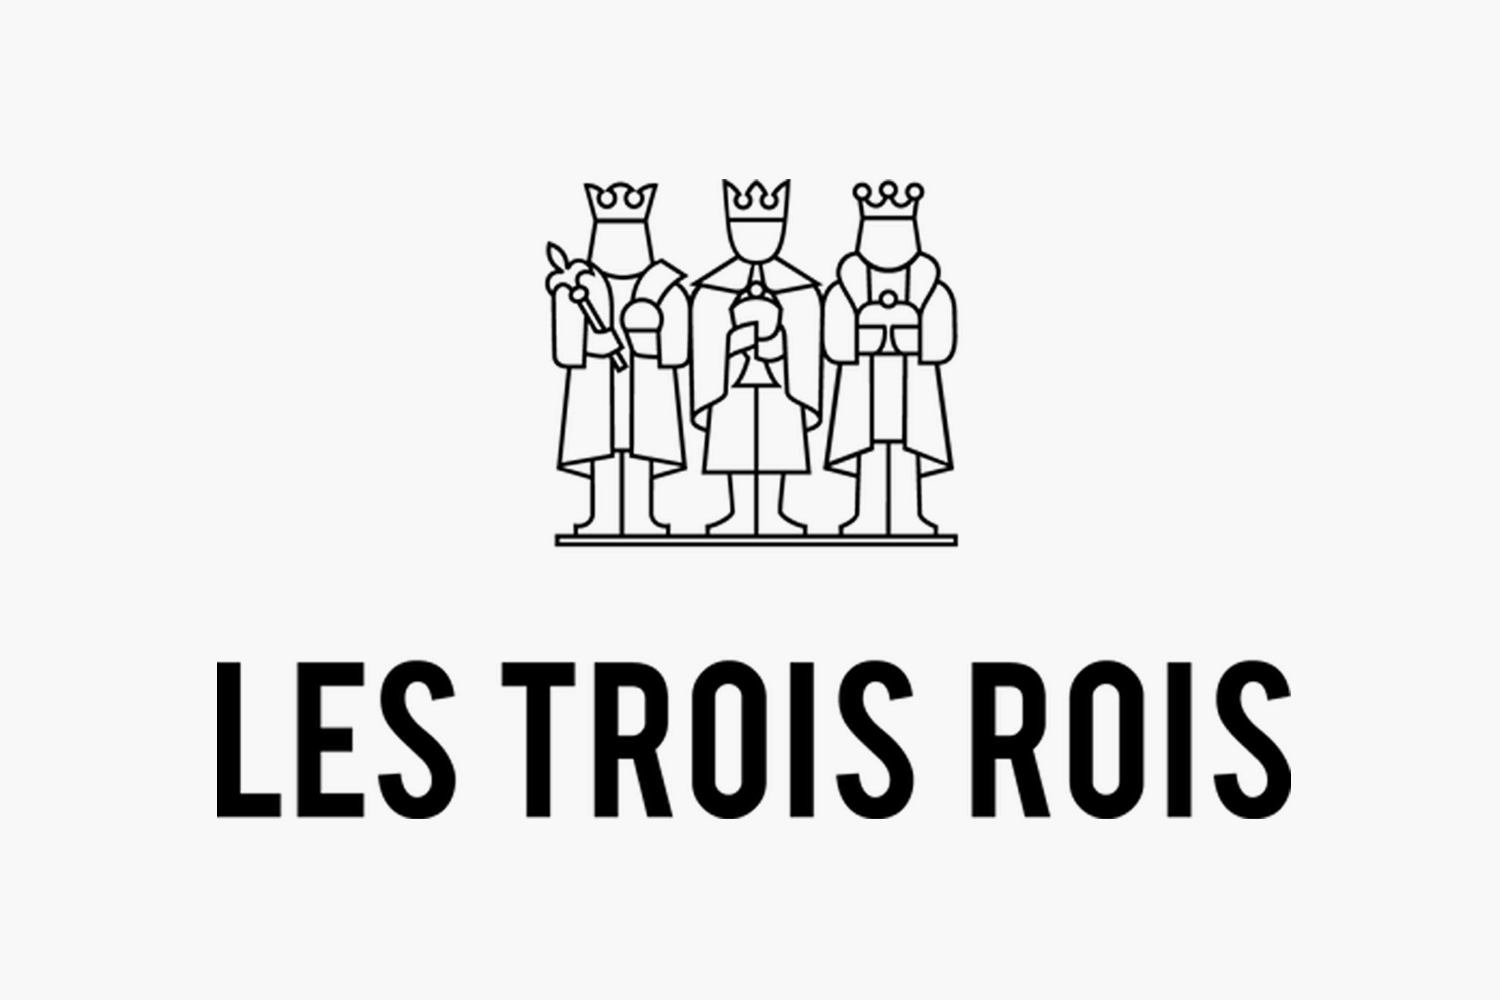 Social Media Marketing - Instagram Marketing Advice and Influencer Marketing with baselswizz for the Grand Hotel Les Trois Rois